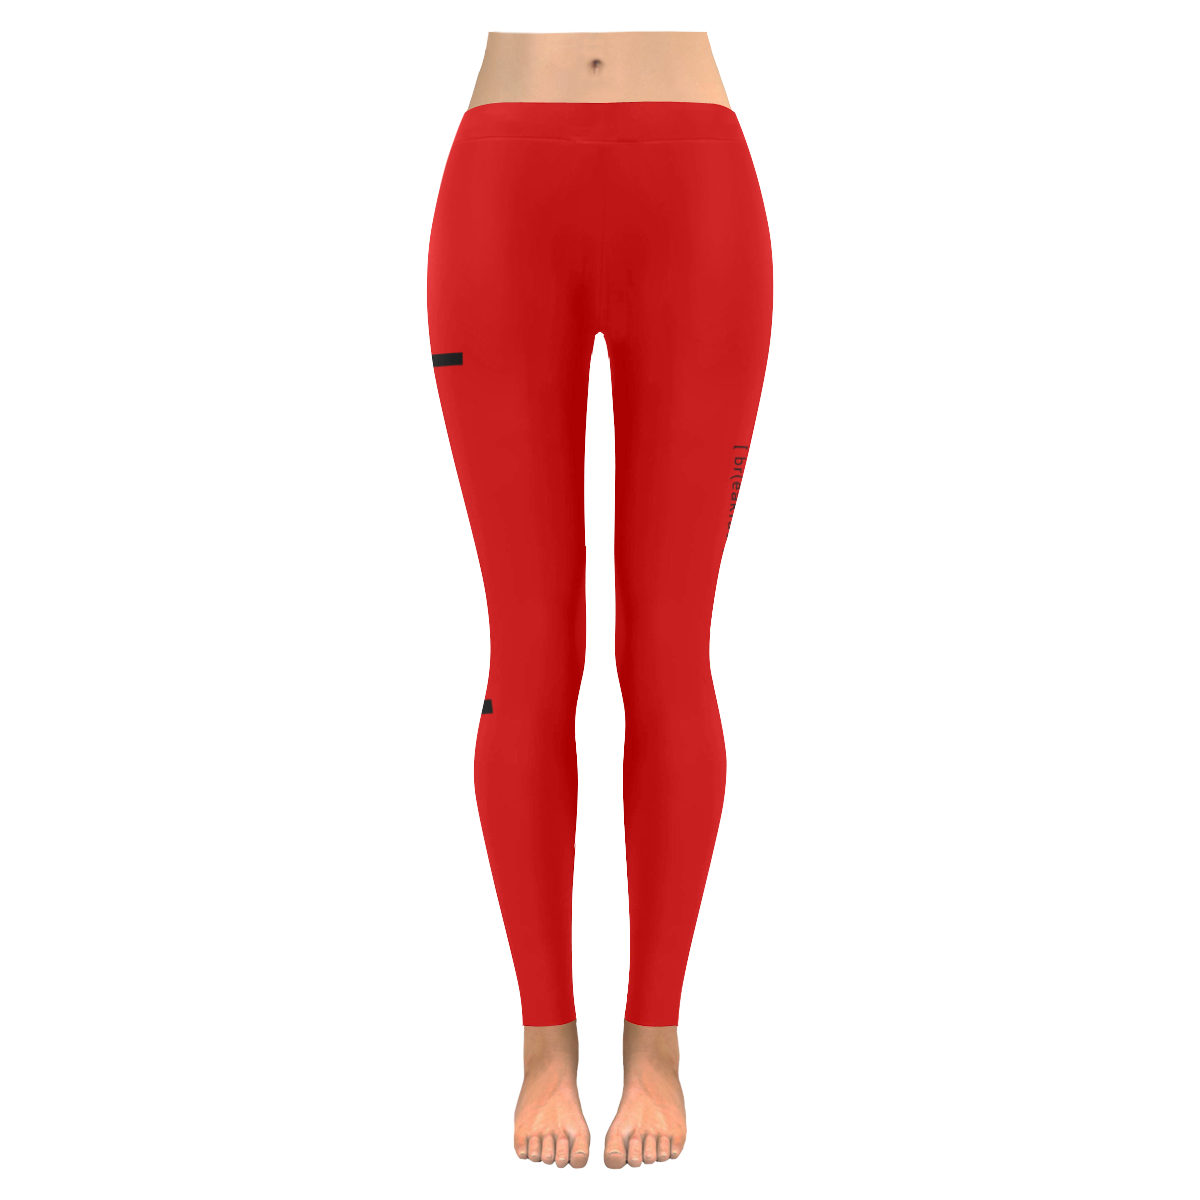 da8e47dfecb2b Womens Leggings Stretch Yoga Pants S, M, L, XL 2XL Red Brunch Breakfast  Lunch Low Rise Leggings (Invisible Stitch) (Model L05) | ID: D2183324